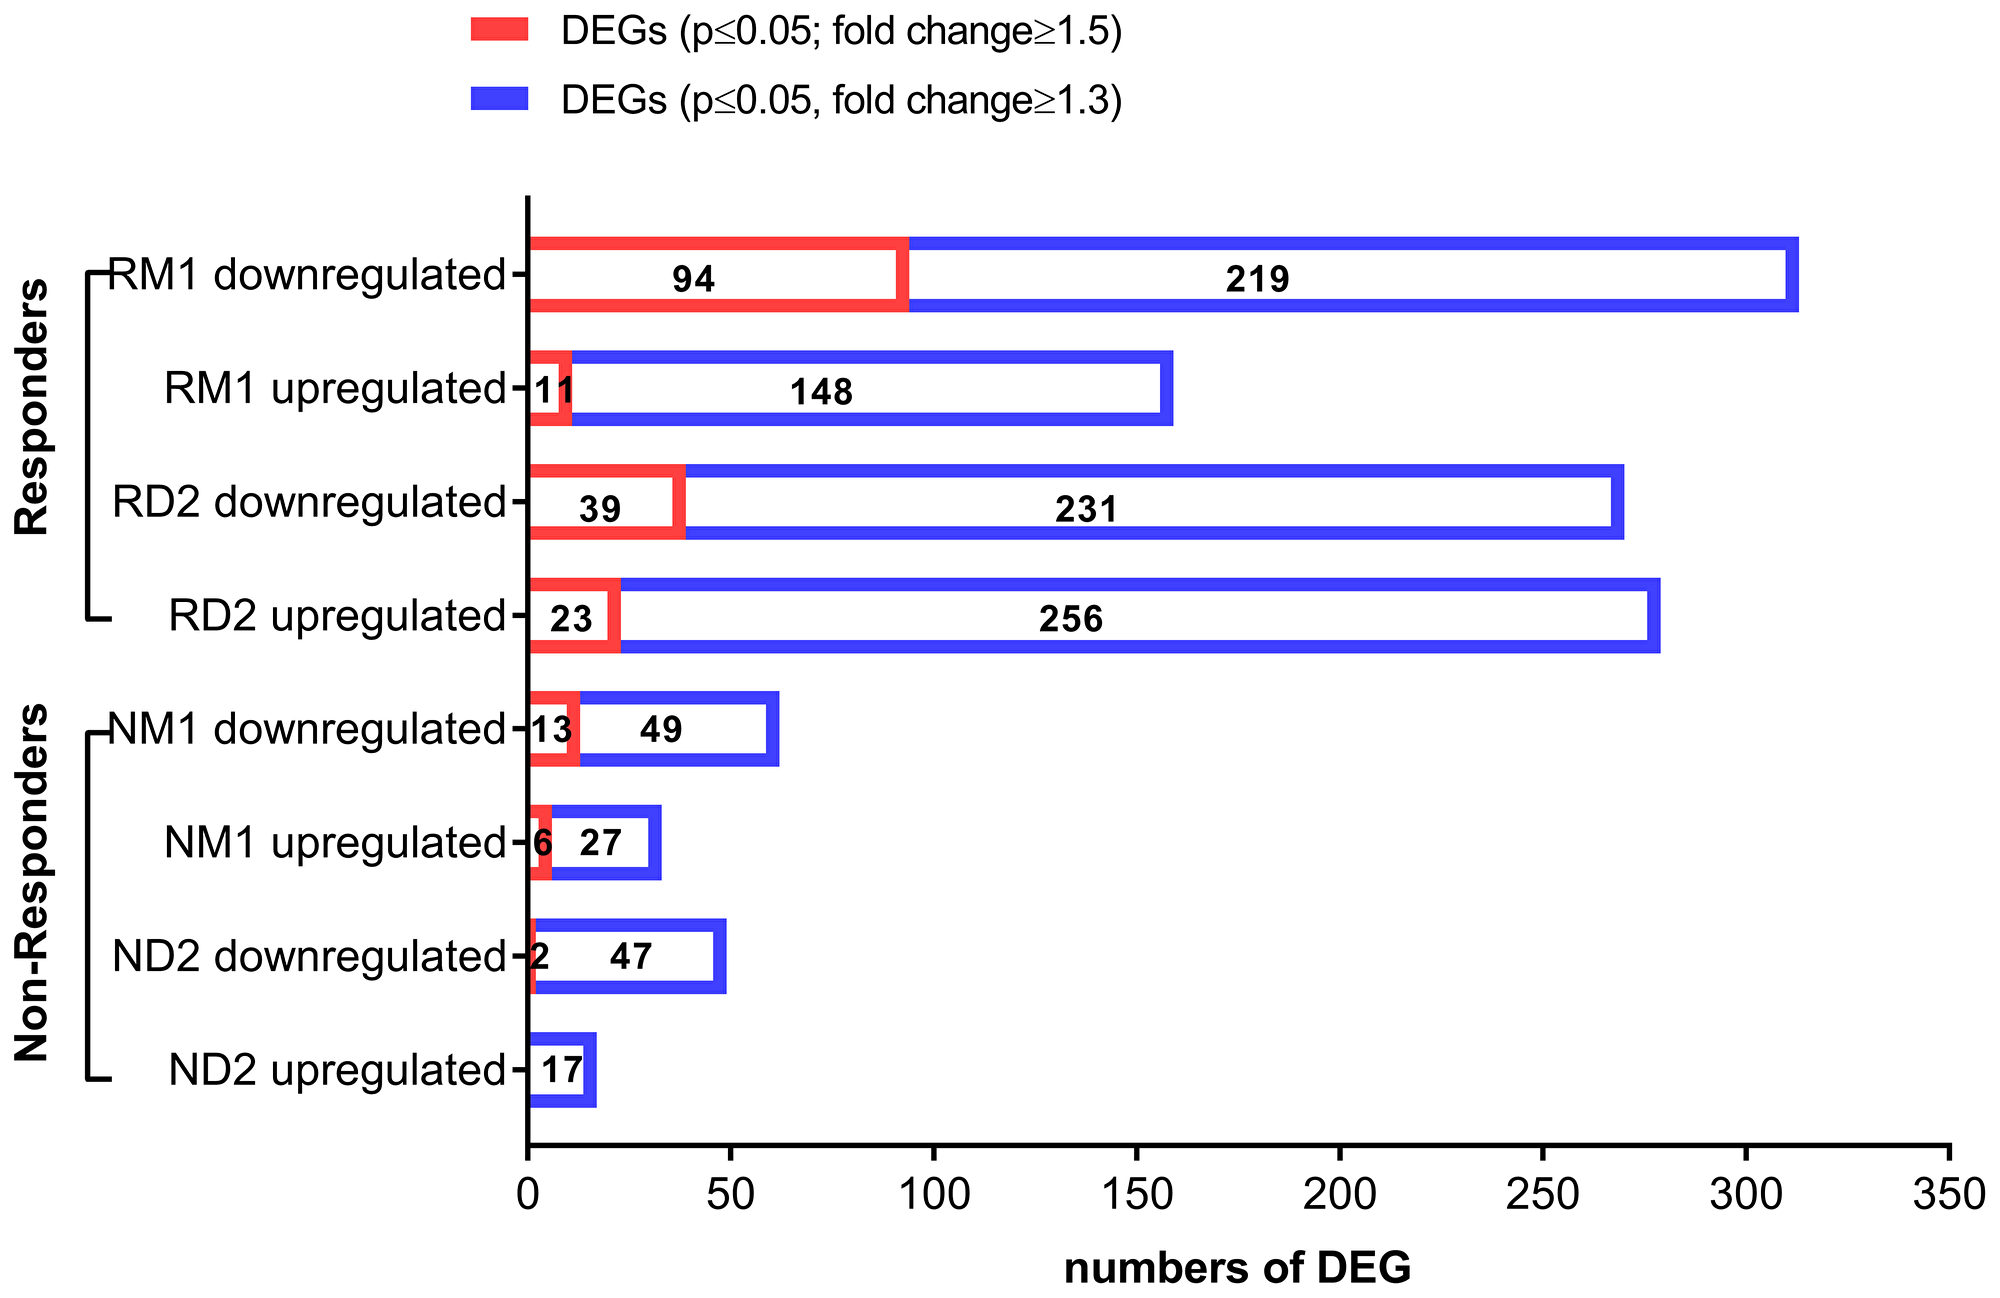 Differentially expressed genes (DEG) in clinically-responsive patients and clinically-resistant patients.